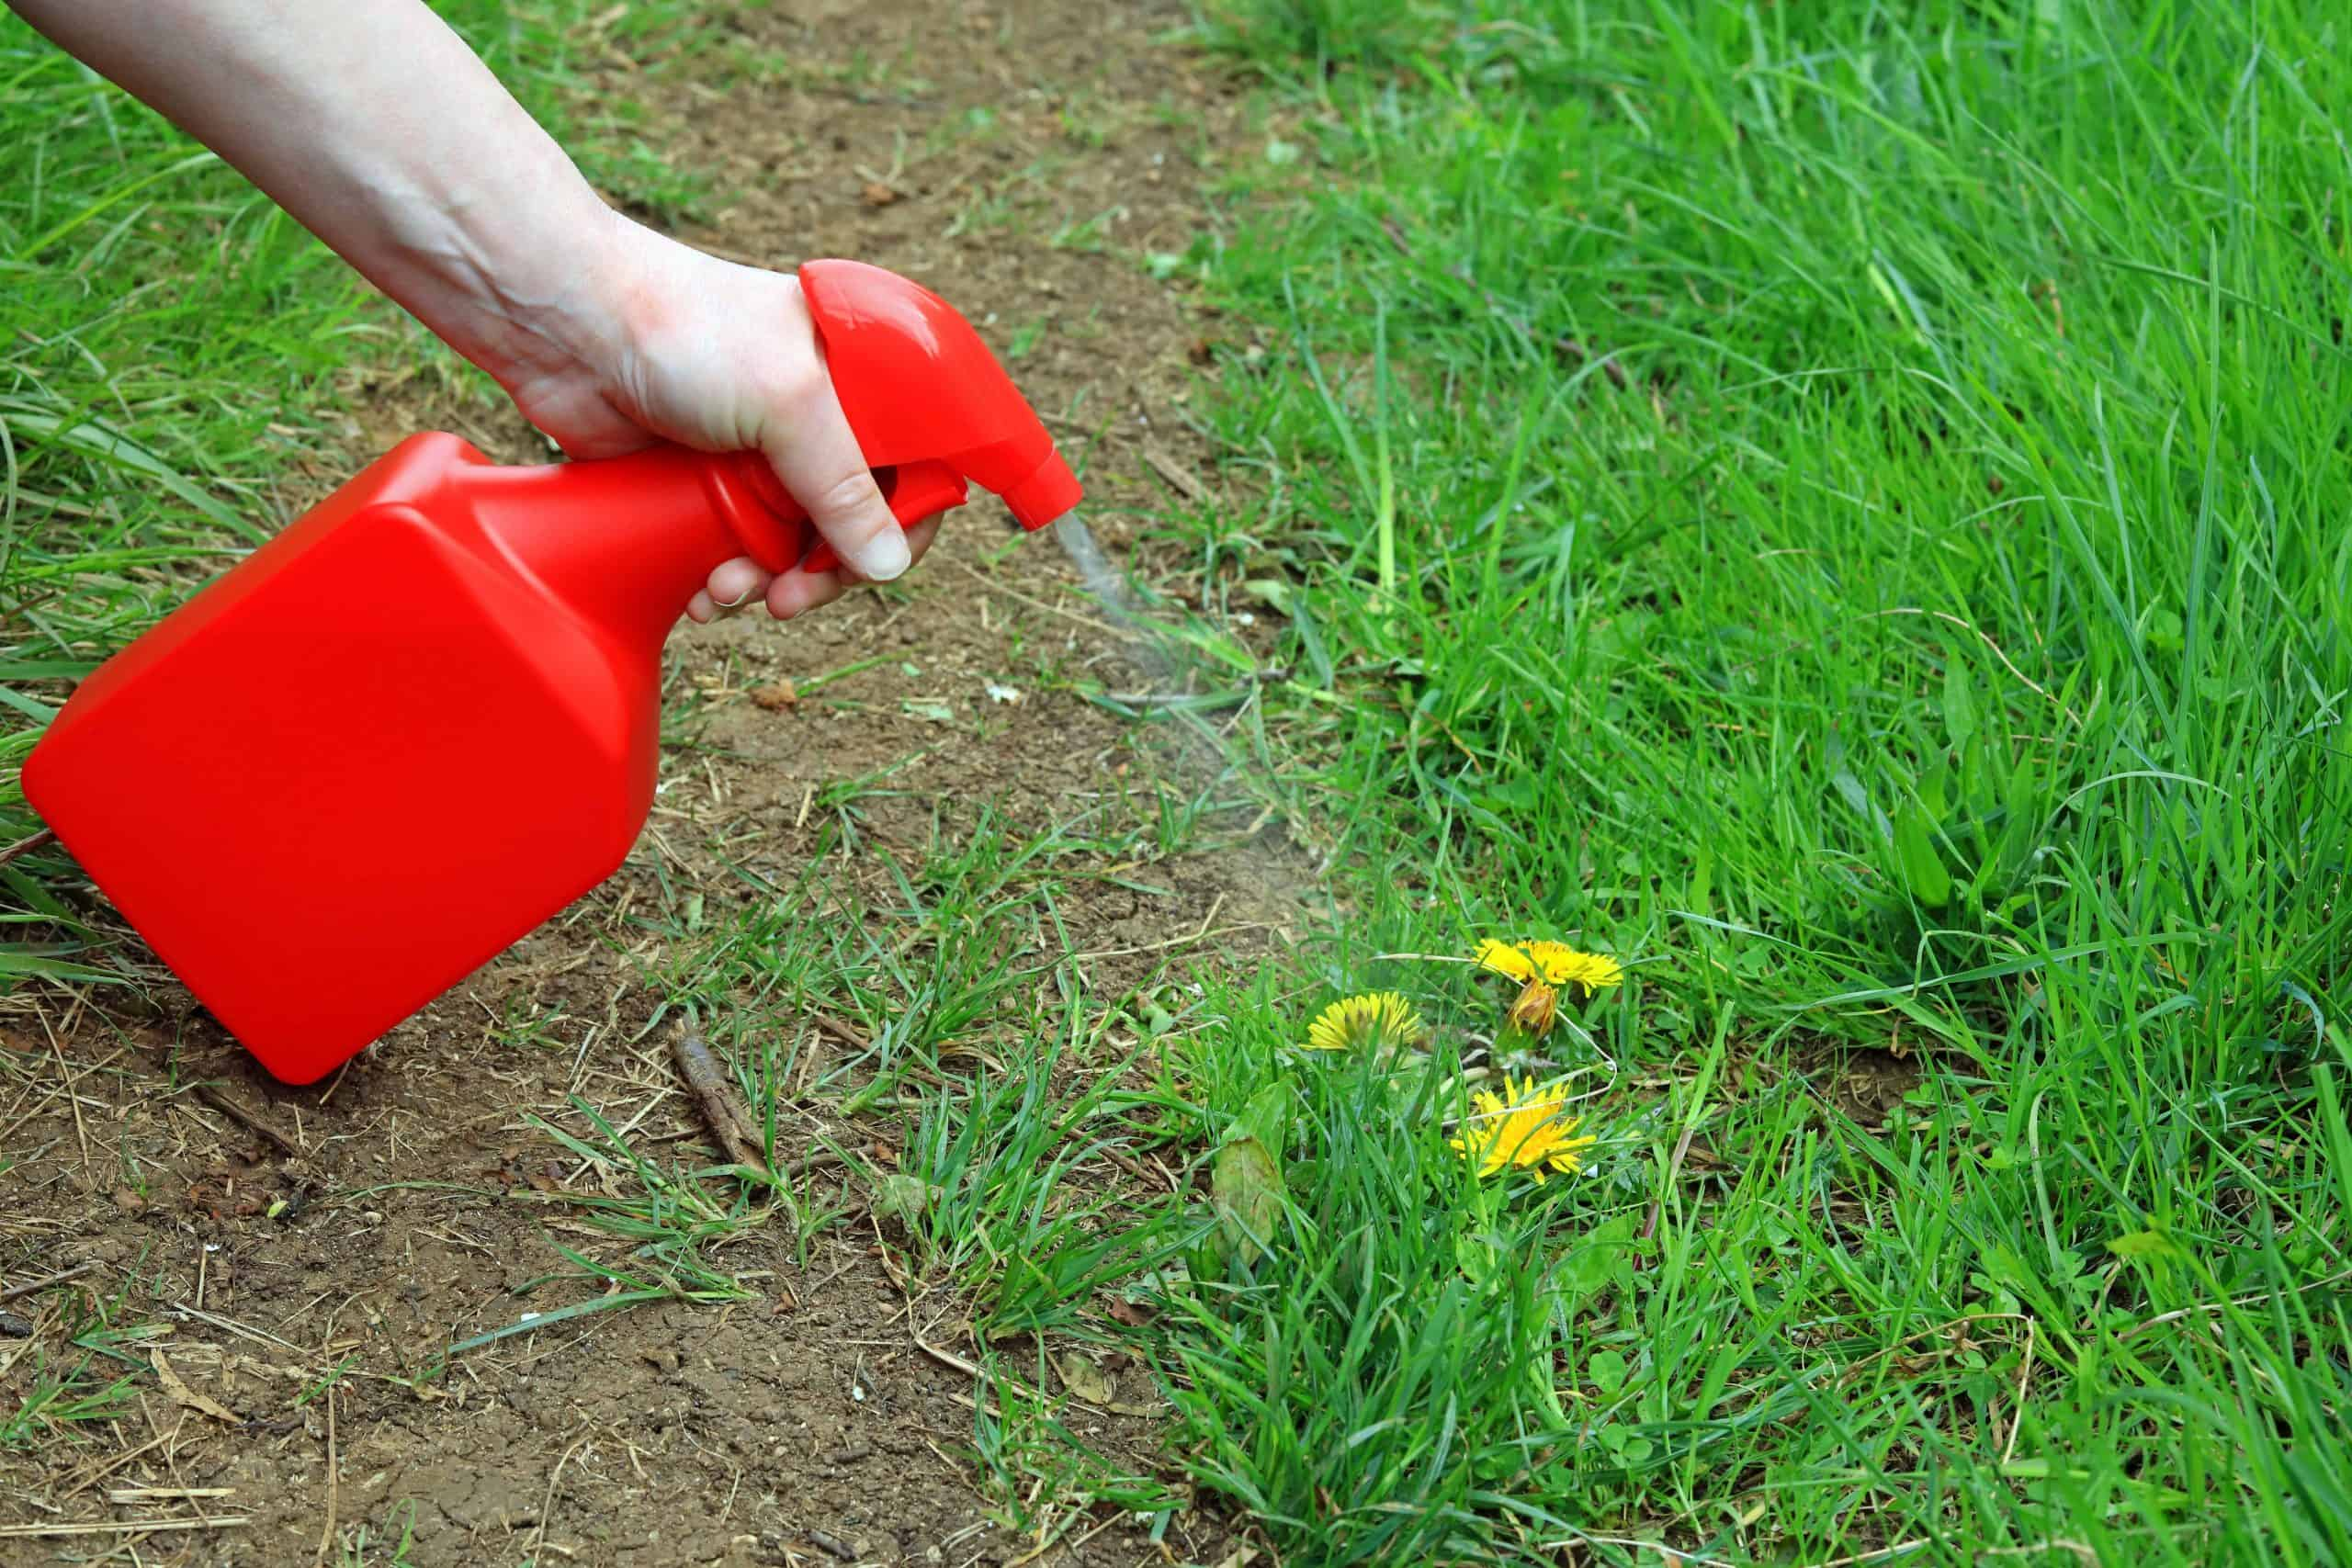 vinegar being sprayed on a dandelion lawn weed to get rid of it